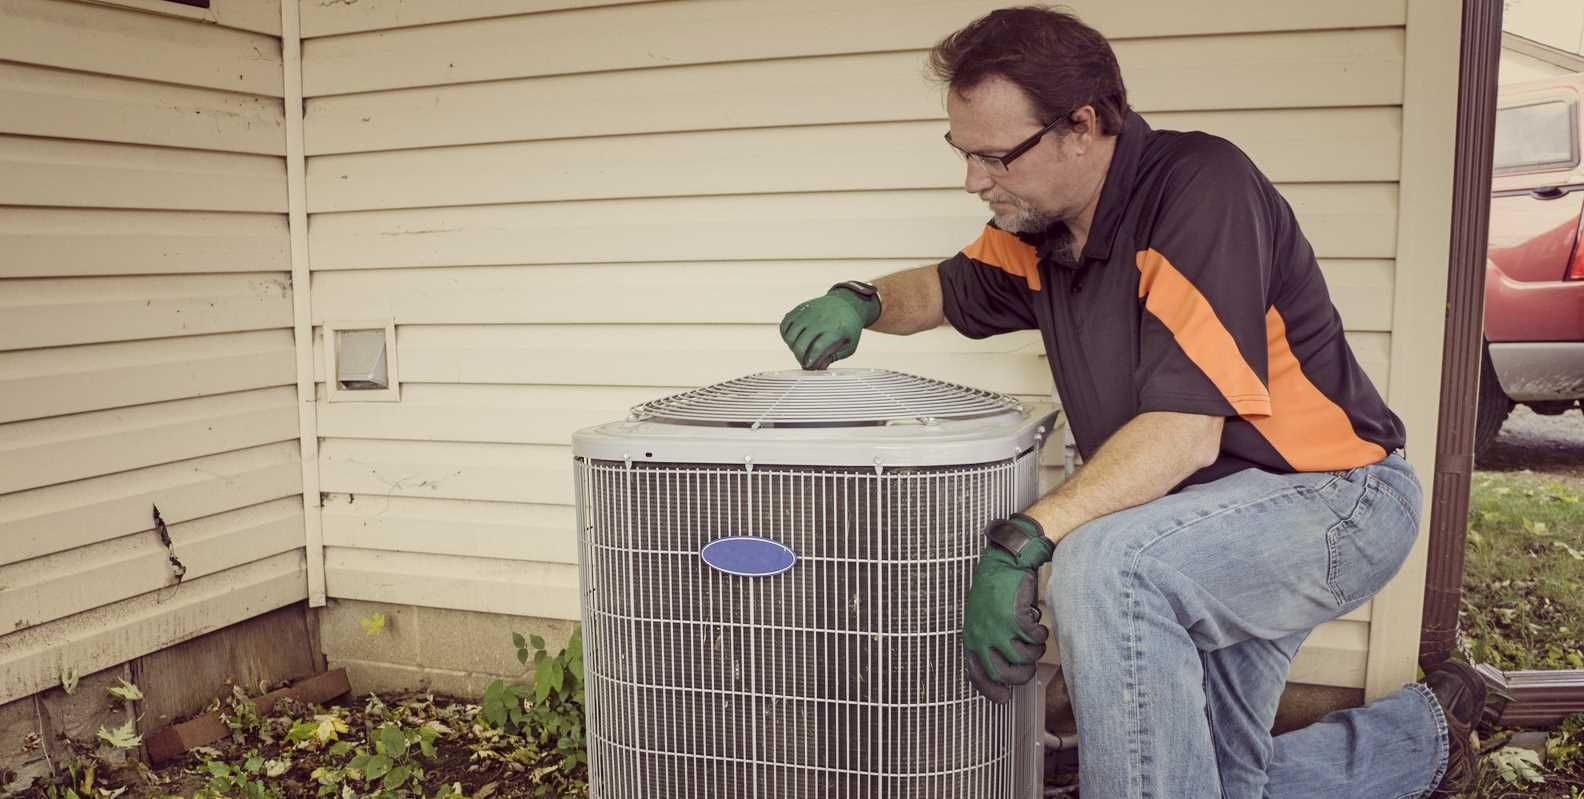 Water Damage Repair In Springfield Missouri From Your HVAC